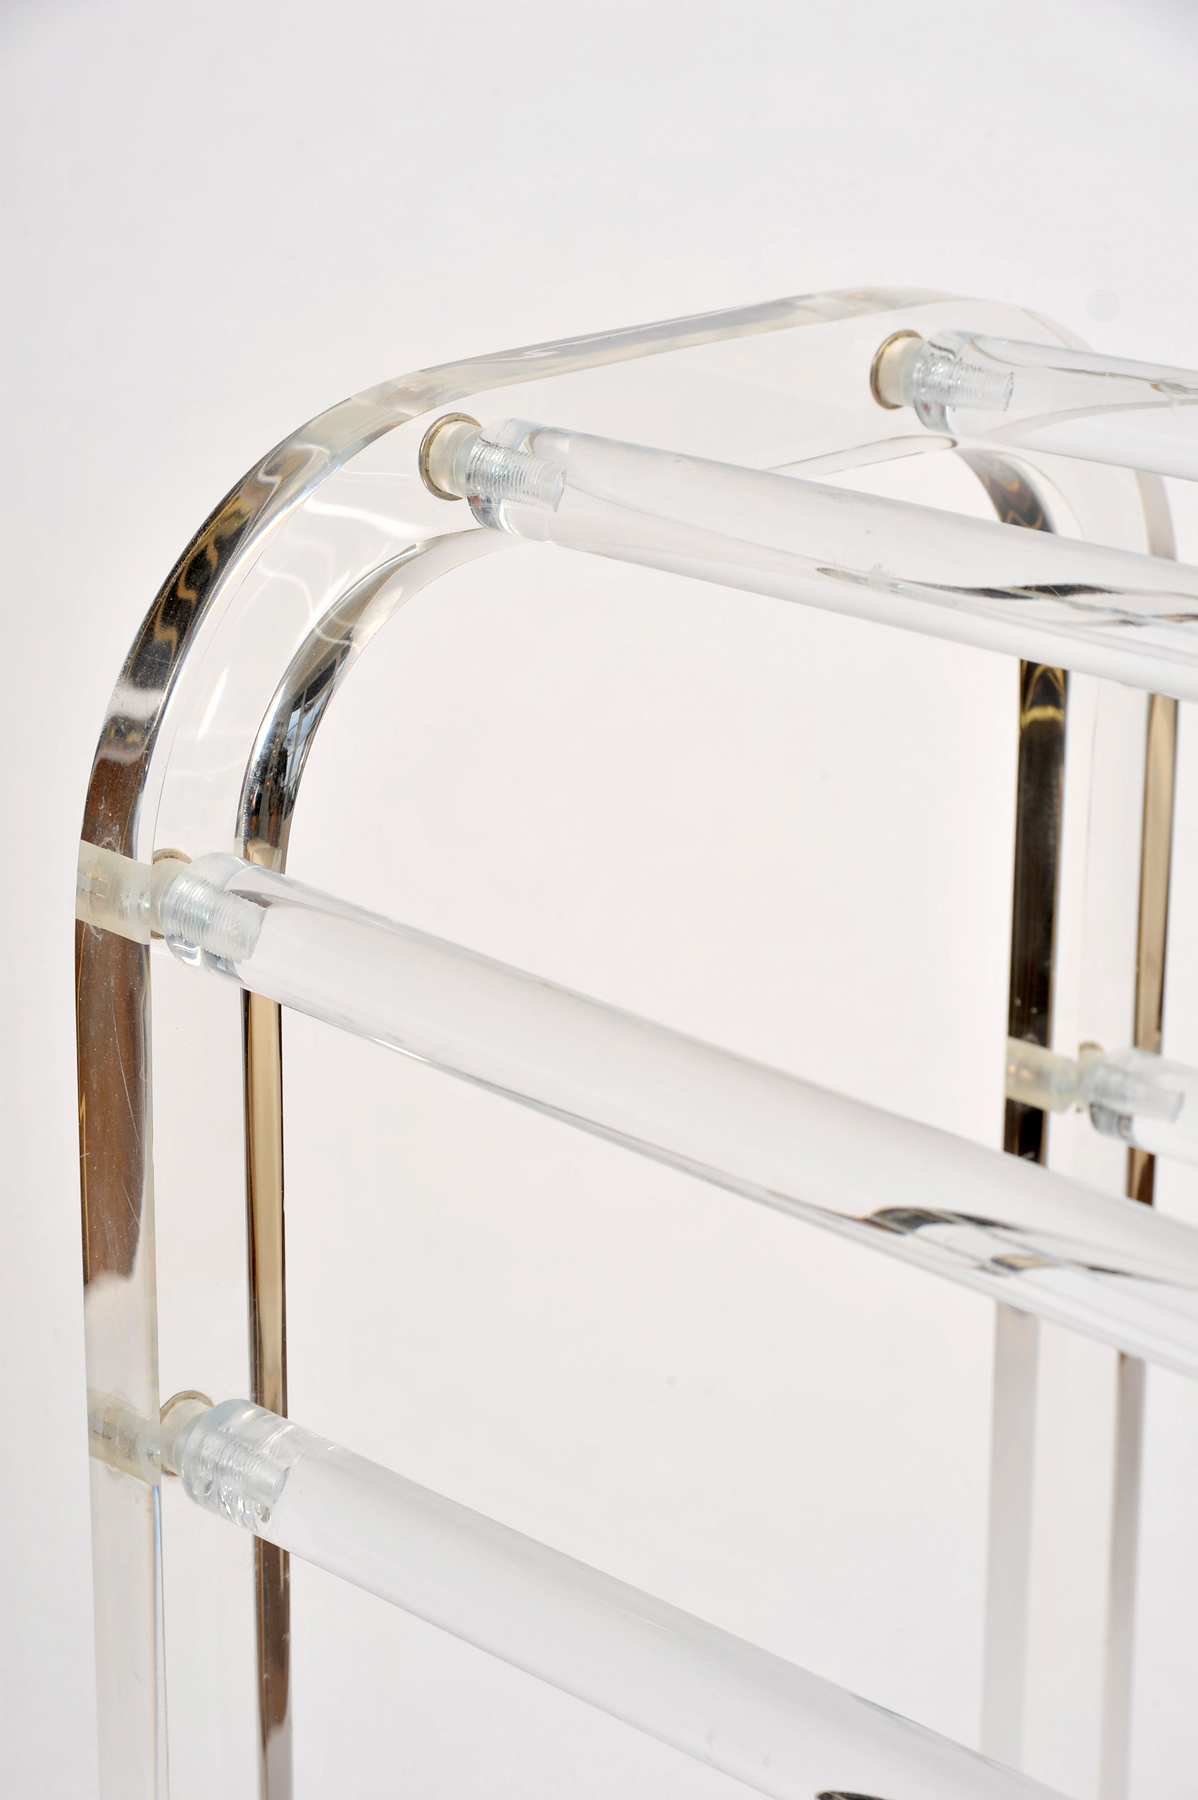 The image for Vw Lucite Towel Rail Detail 07